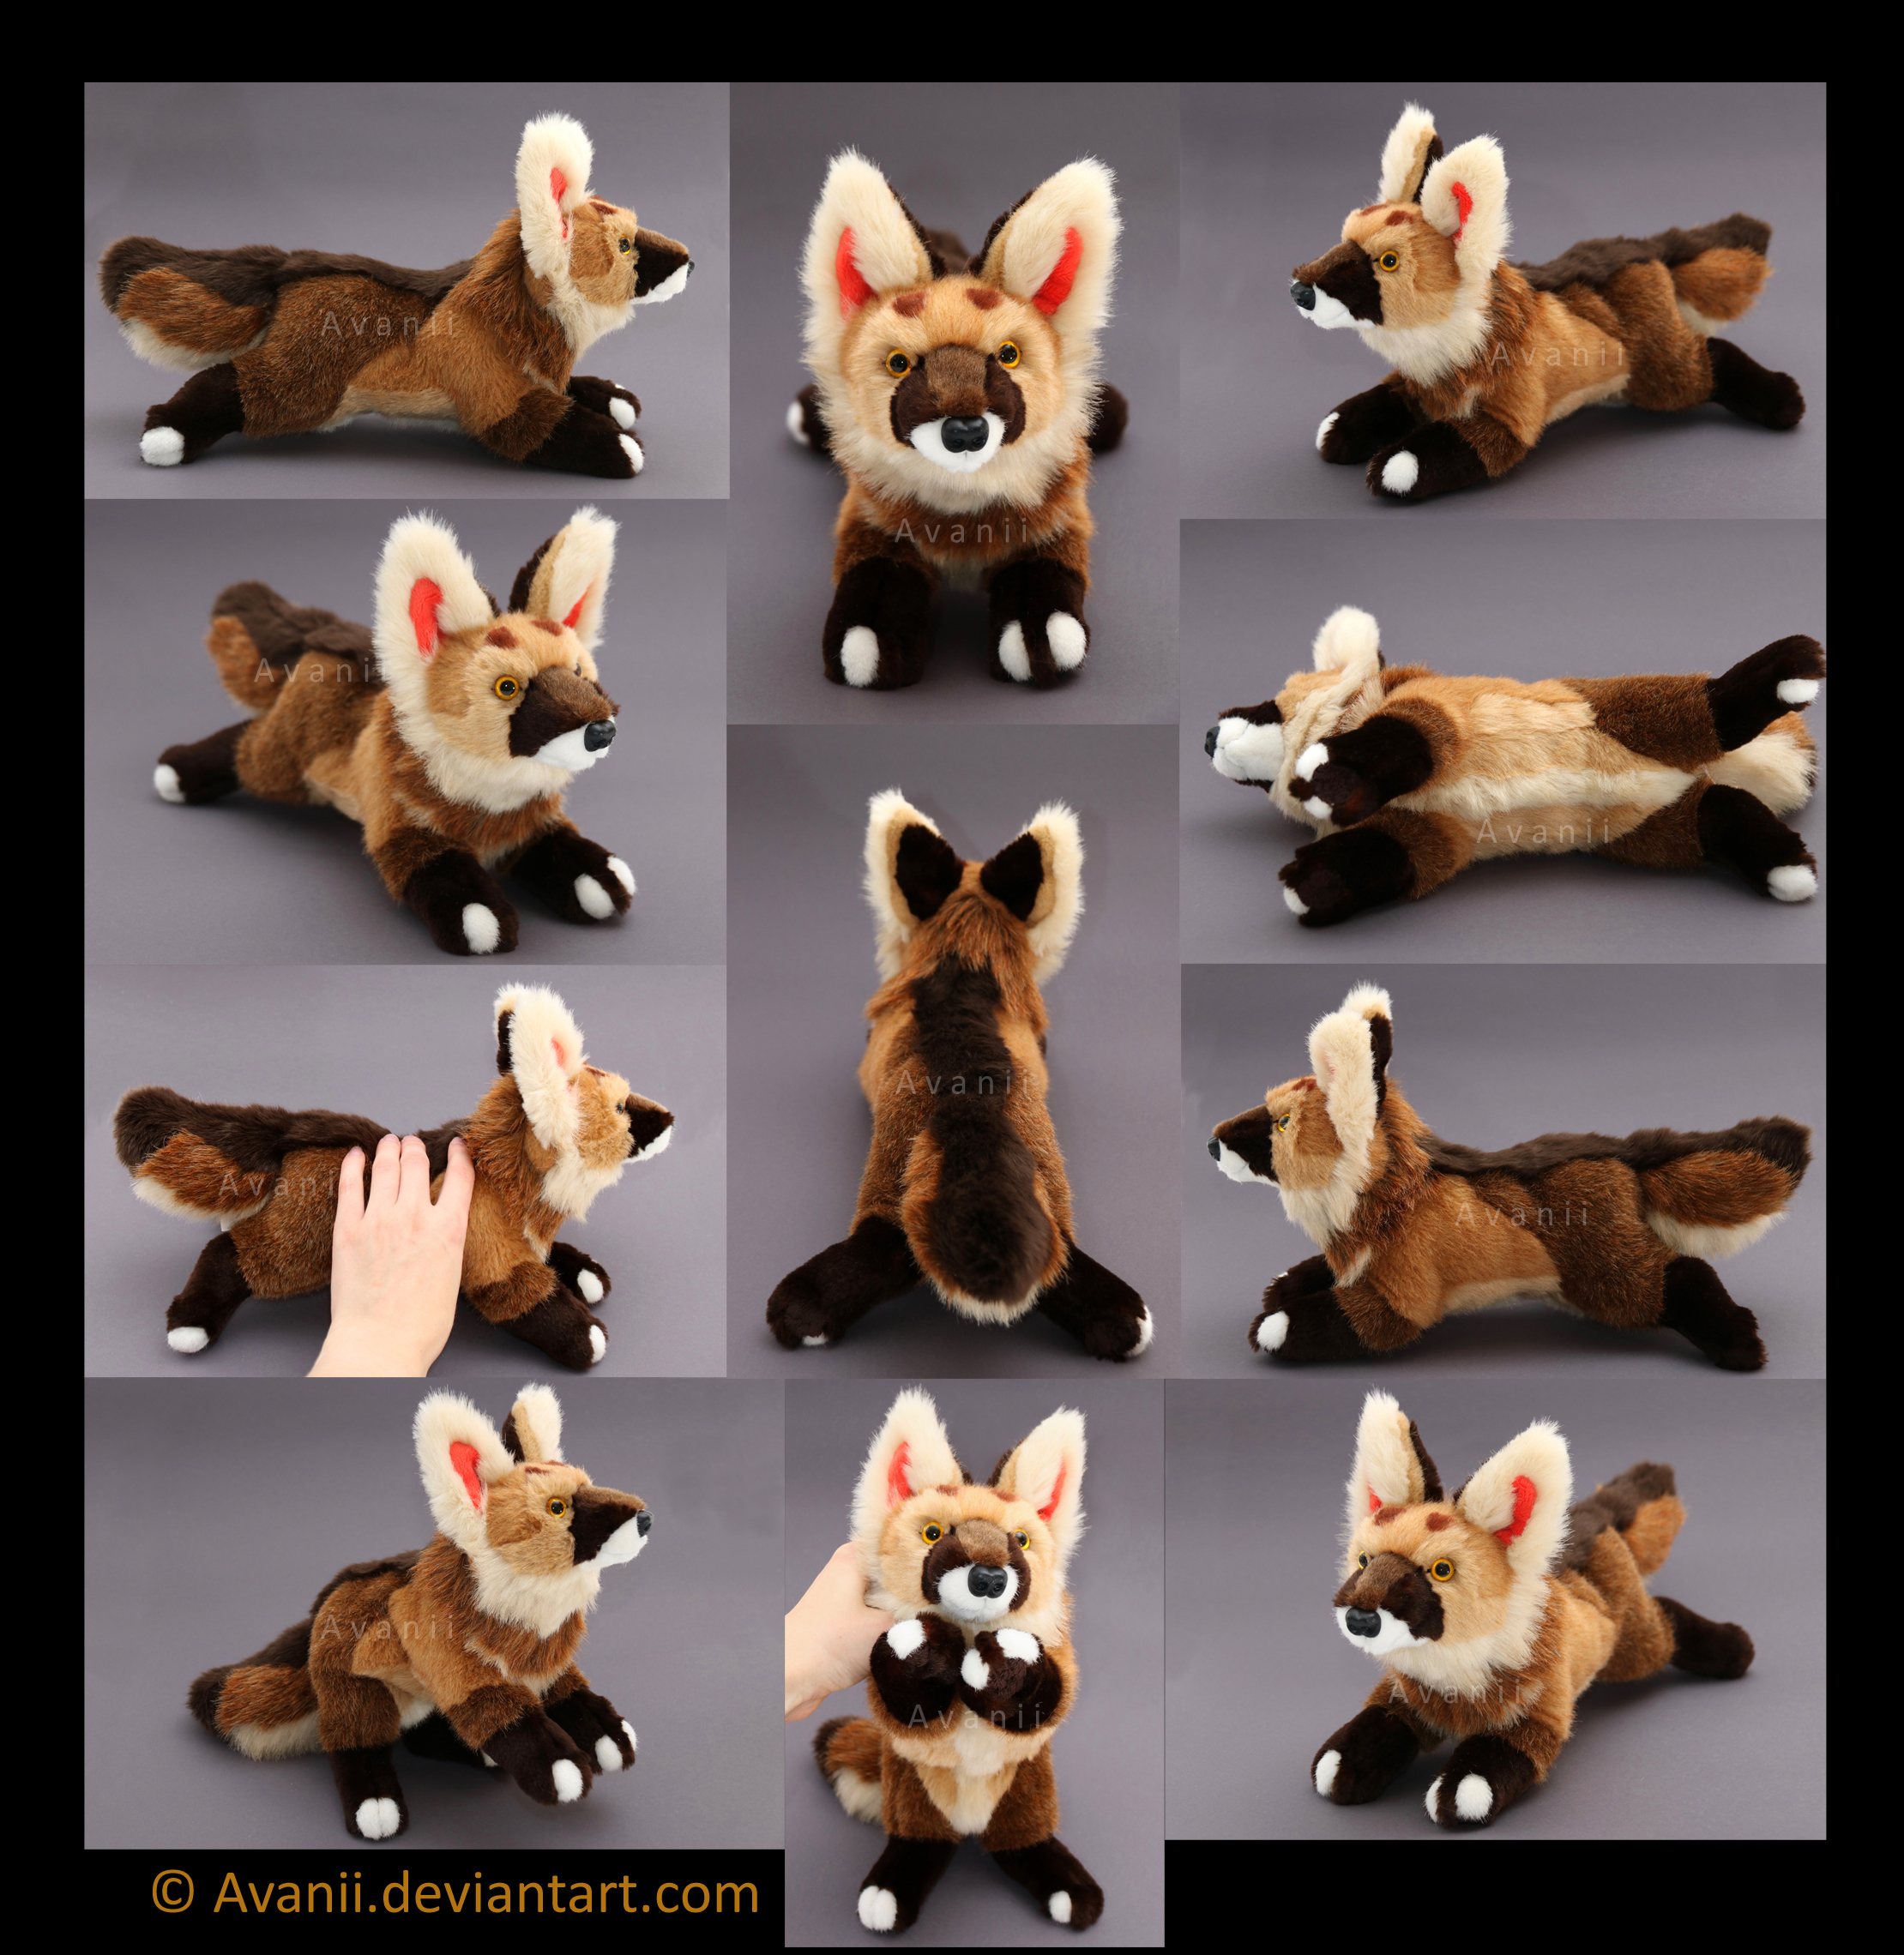 Plushie Commission: Akamai the Jackal by Avanii